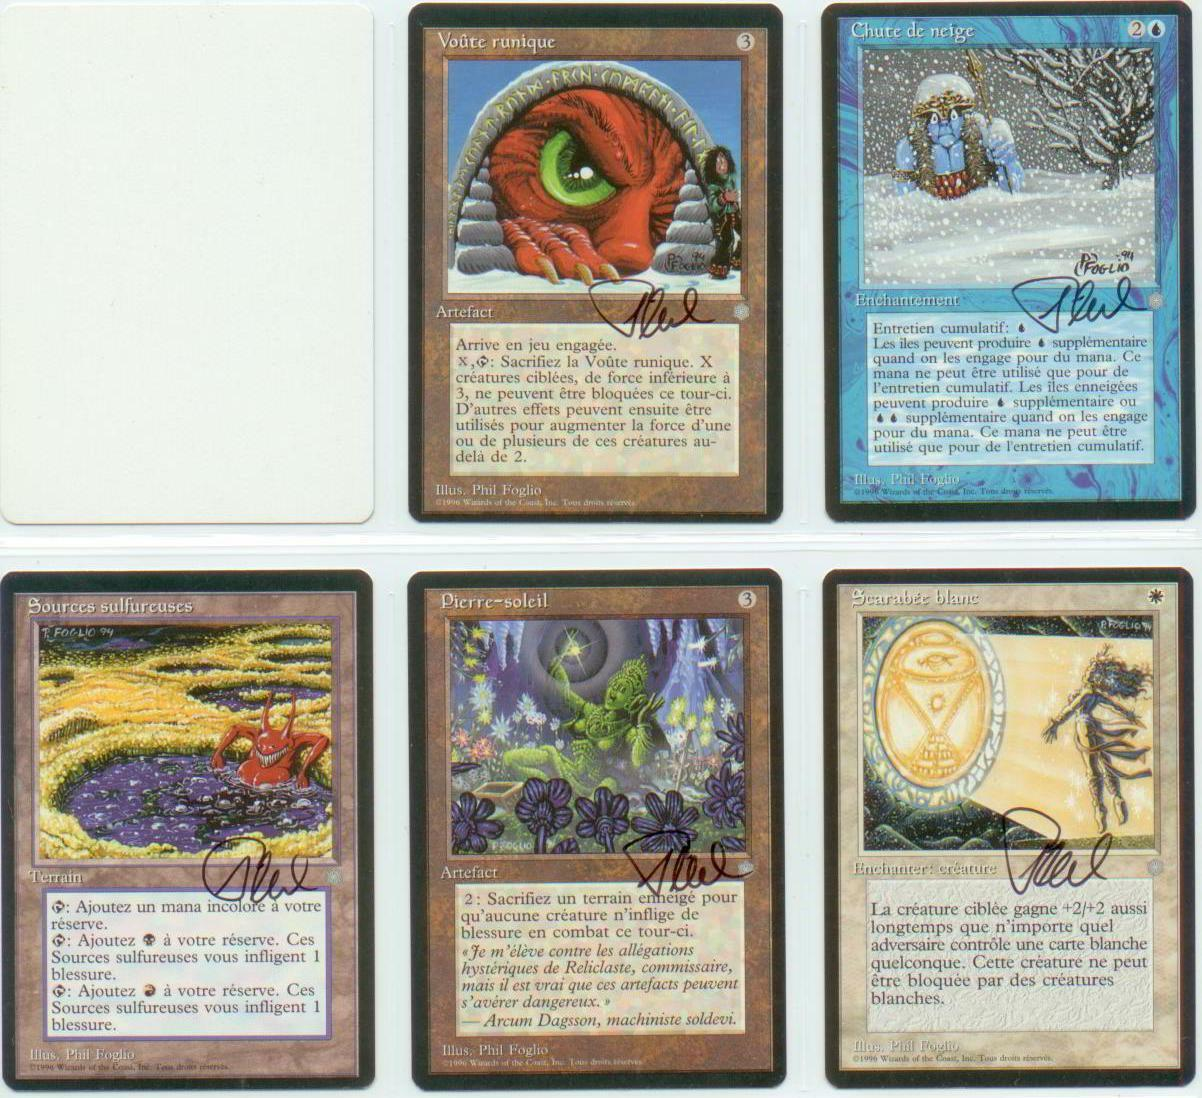 SIGNED Phil Foglio Artist Proof _13x FRE ICE AGE_ Anarchy, Anarchy, Anarchy, Sulfur Springs, Lure+ 0fc4b3